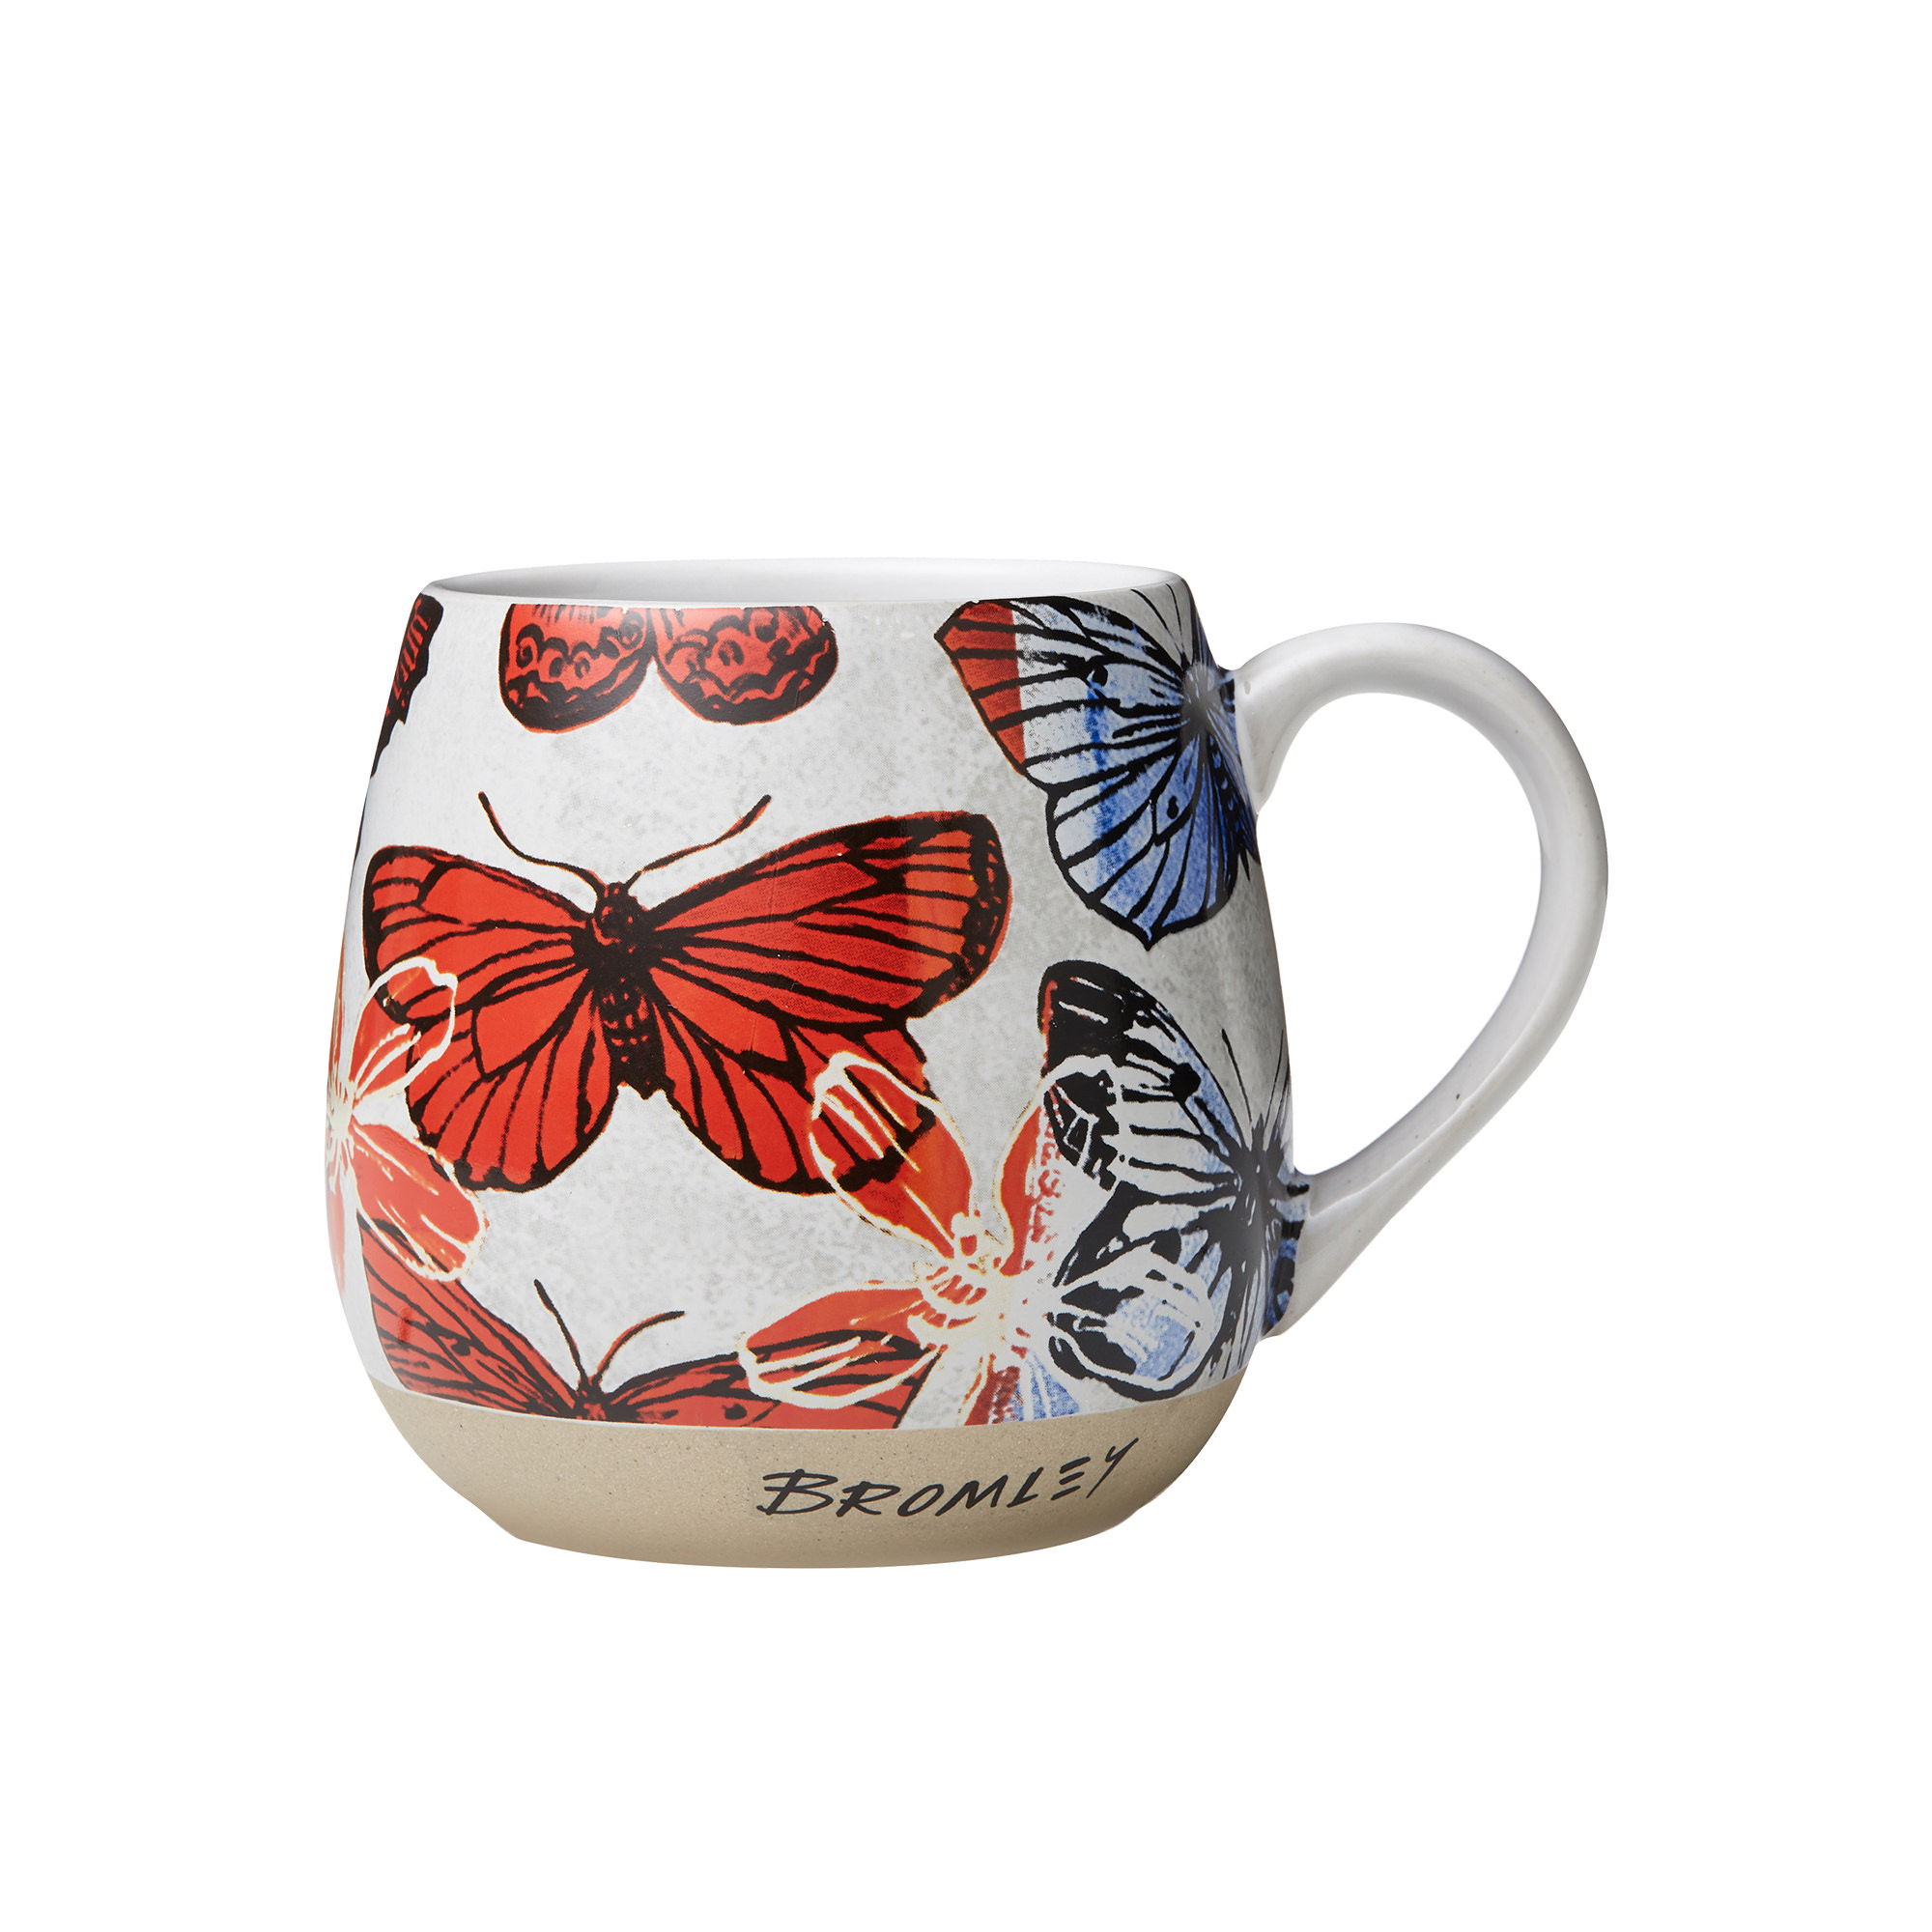 Robert Gordon Bromley X Hug Me Mug 550ml Red Butterflies